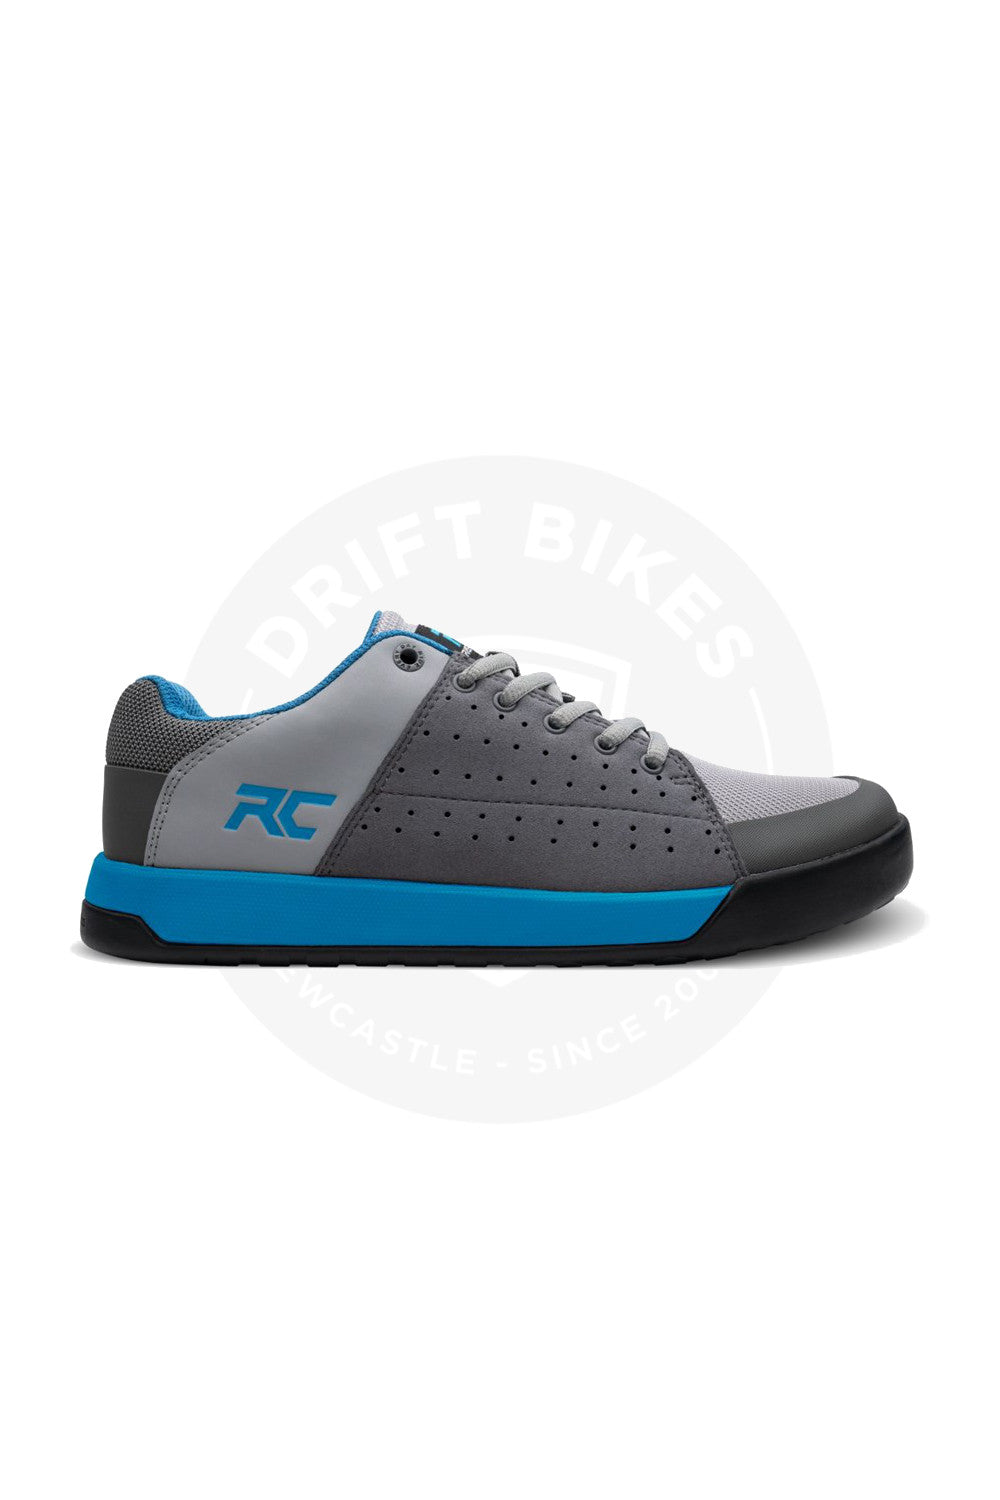 Ride Concepts Livewire Youth Flat Bike Shoe